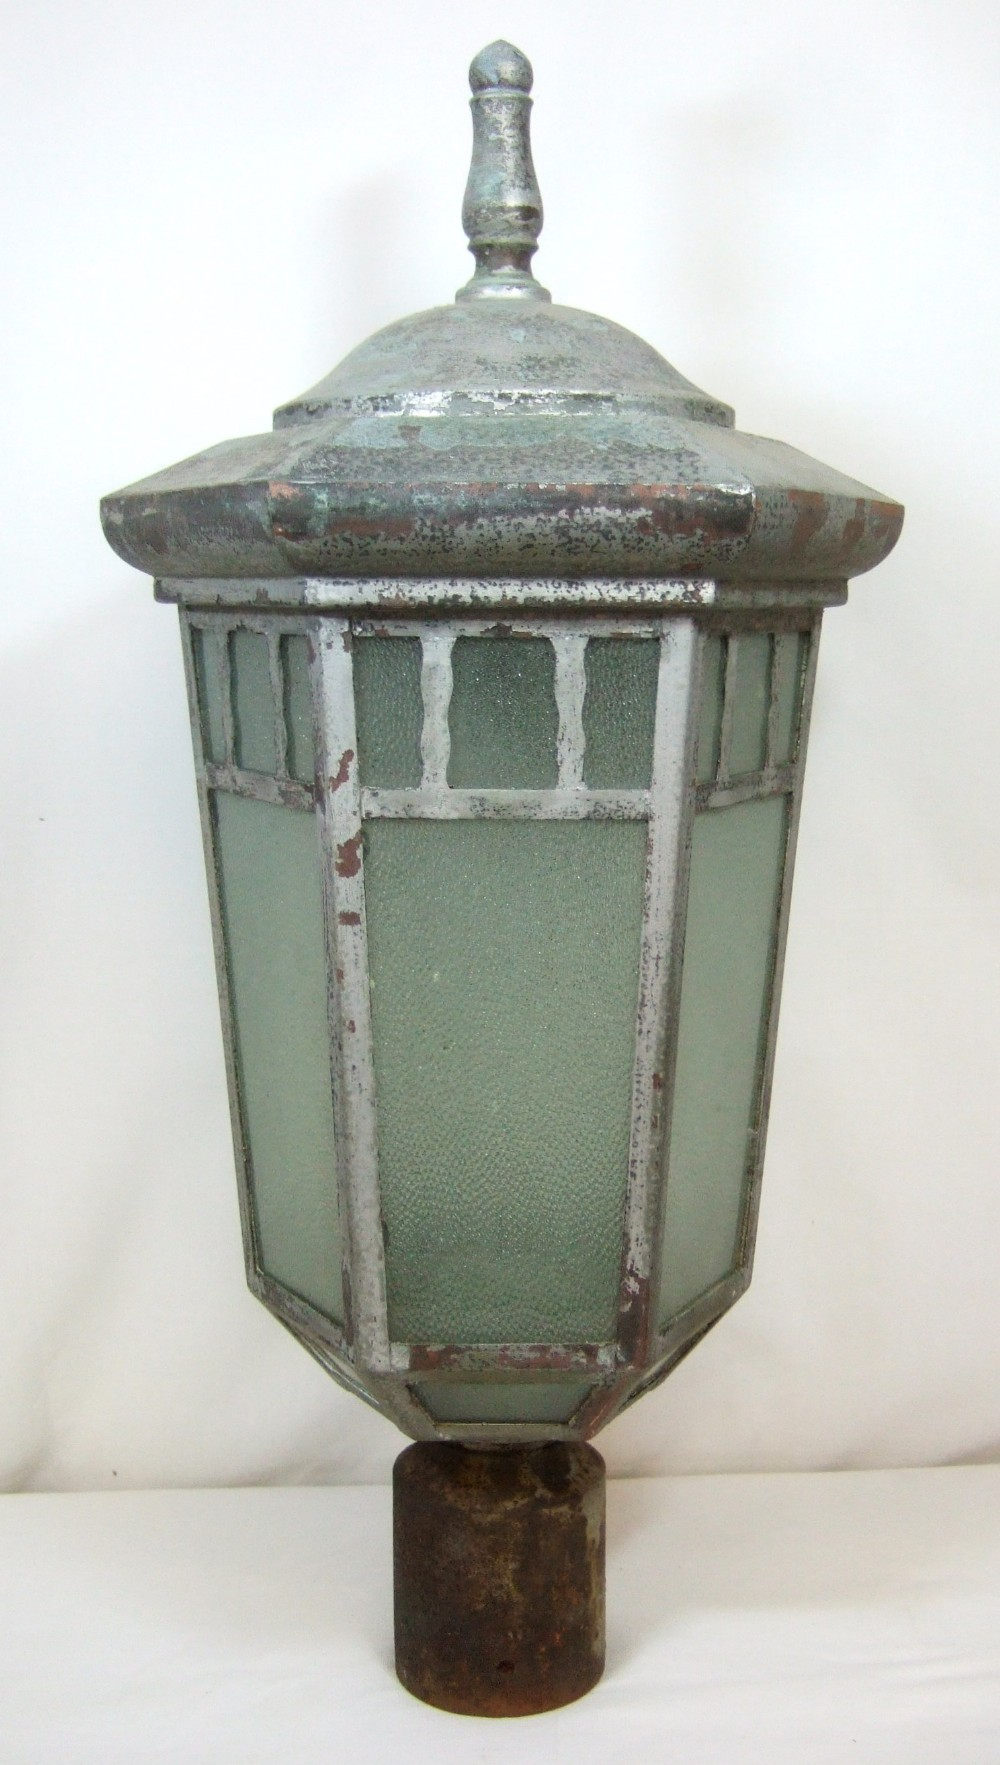 Architectural Salvage Reclaimed Copper Lantern Street Light Exterior Lamp